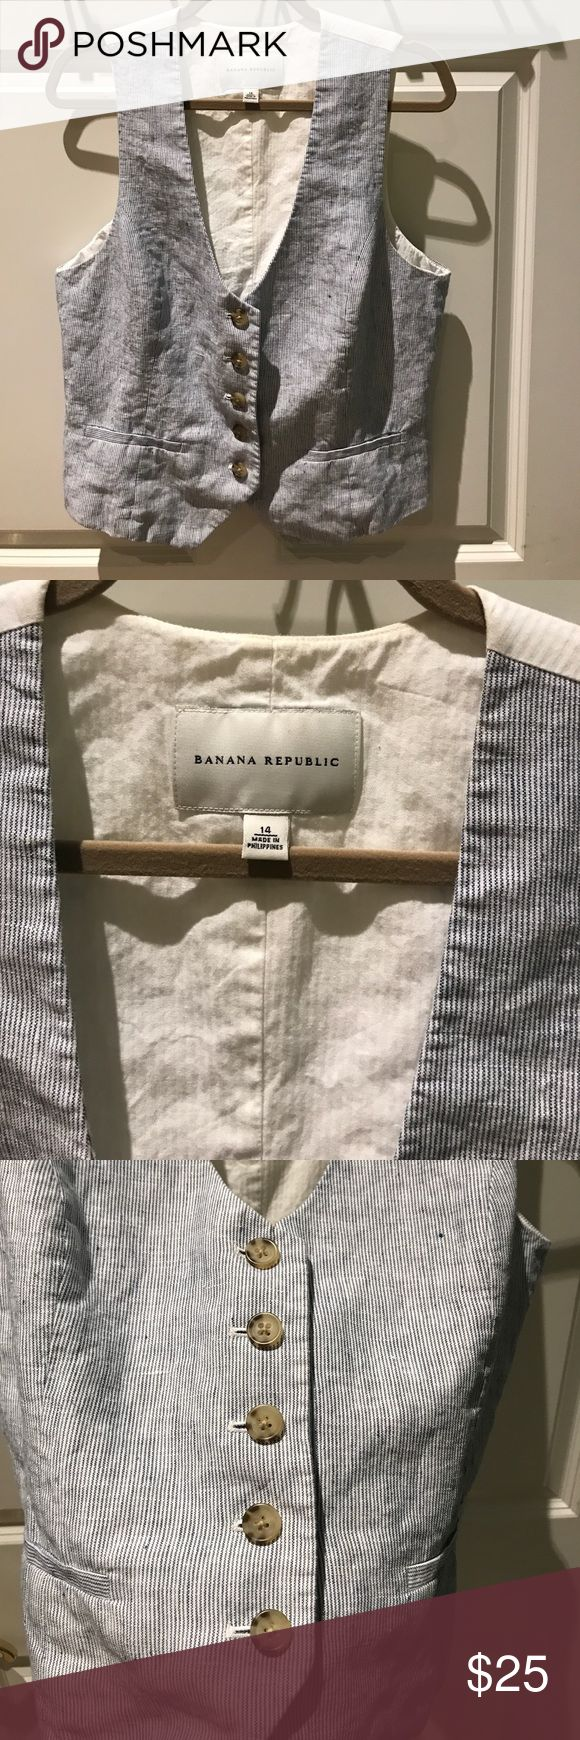 Banana republic linen blue and white vest This is a beautiful summer vest! Blue and white striped pattern on the front, White cotton panel on back and lining.  Little bit of light yellowing around collar  - barely noticeable. priced to reflect. Quality piece! Banana Republic Jackets & Coats Vests